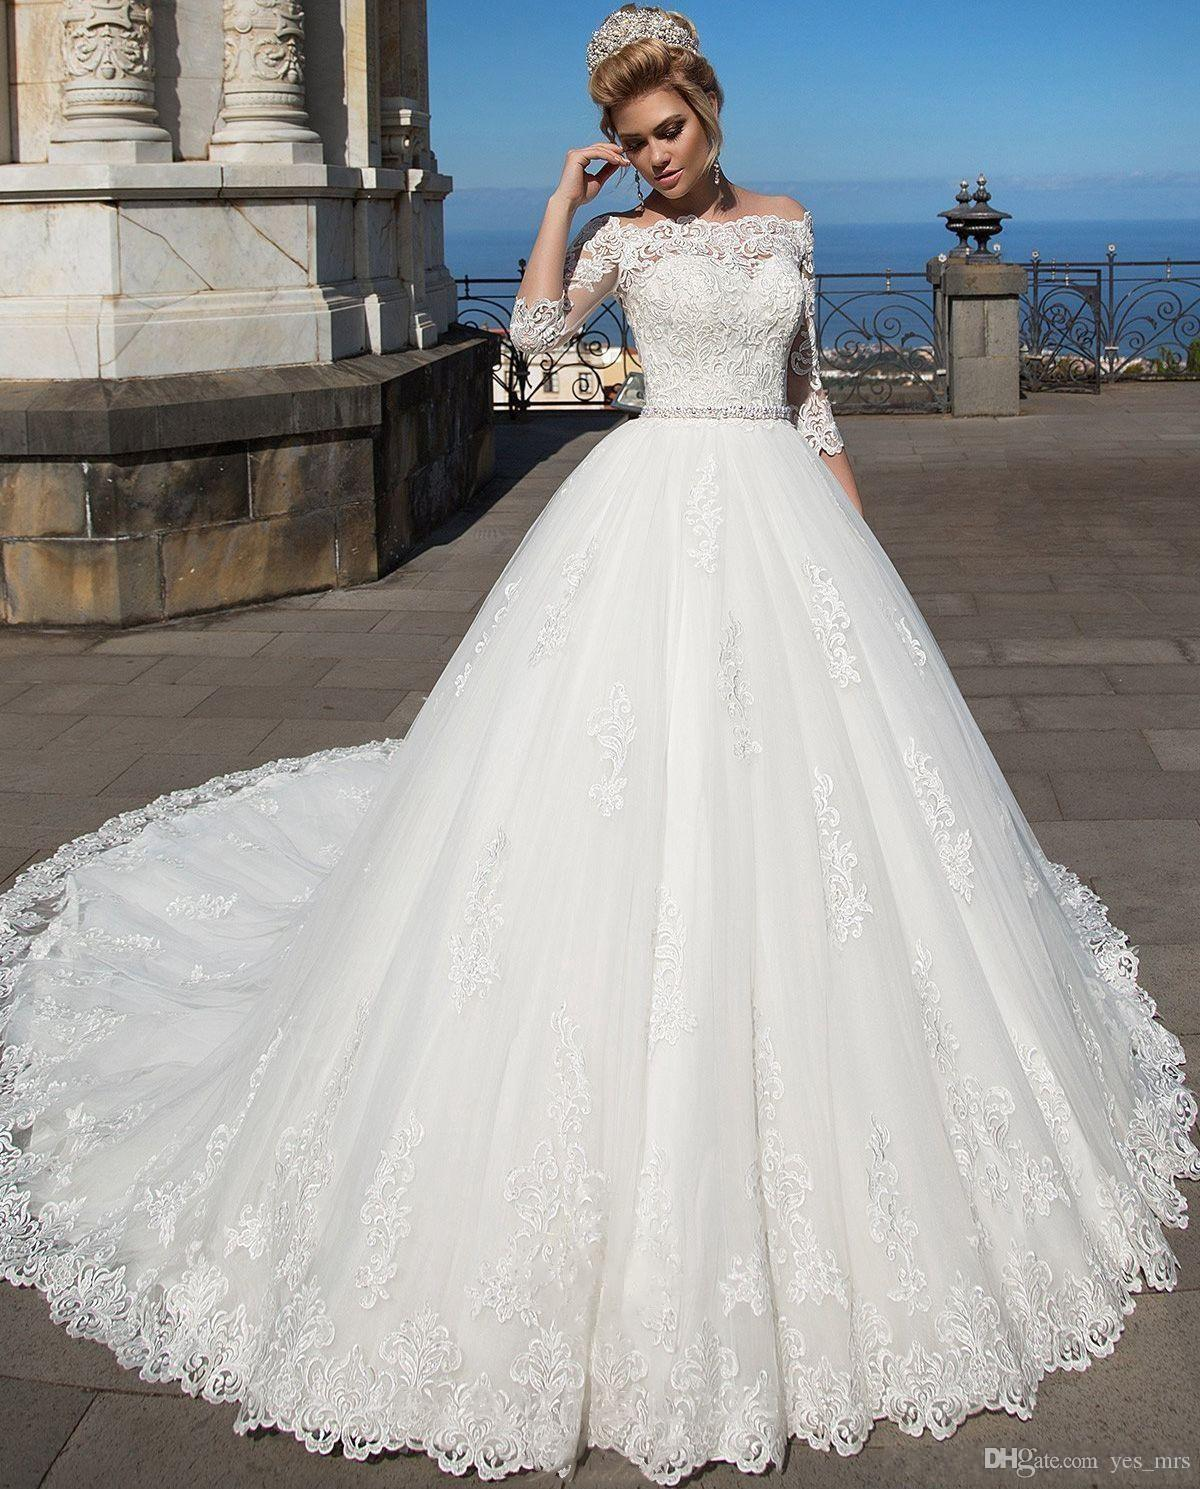 2020 New Arabic Ball Gown Wedding Dresses Illusion Off Shoulder Lace Appliques 3/4 Long Sleeves Plus Size Court Train Formal Bridal Gowns